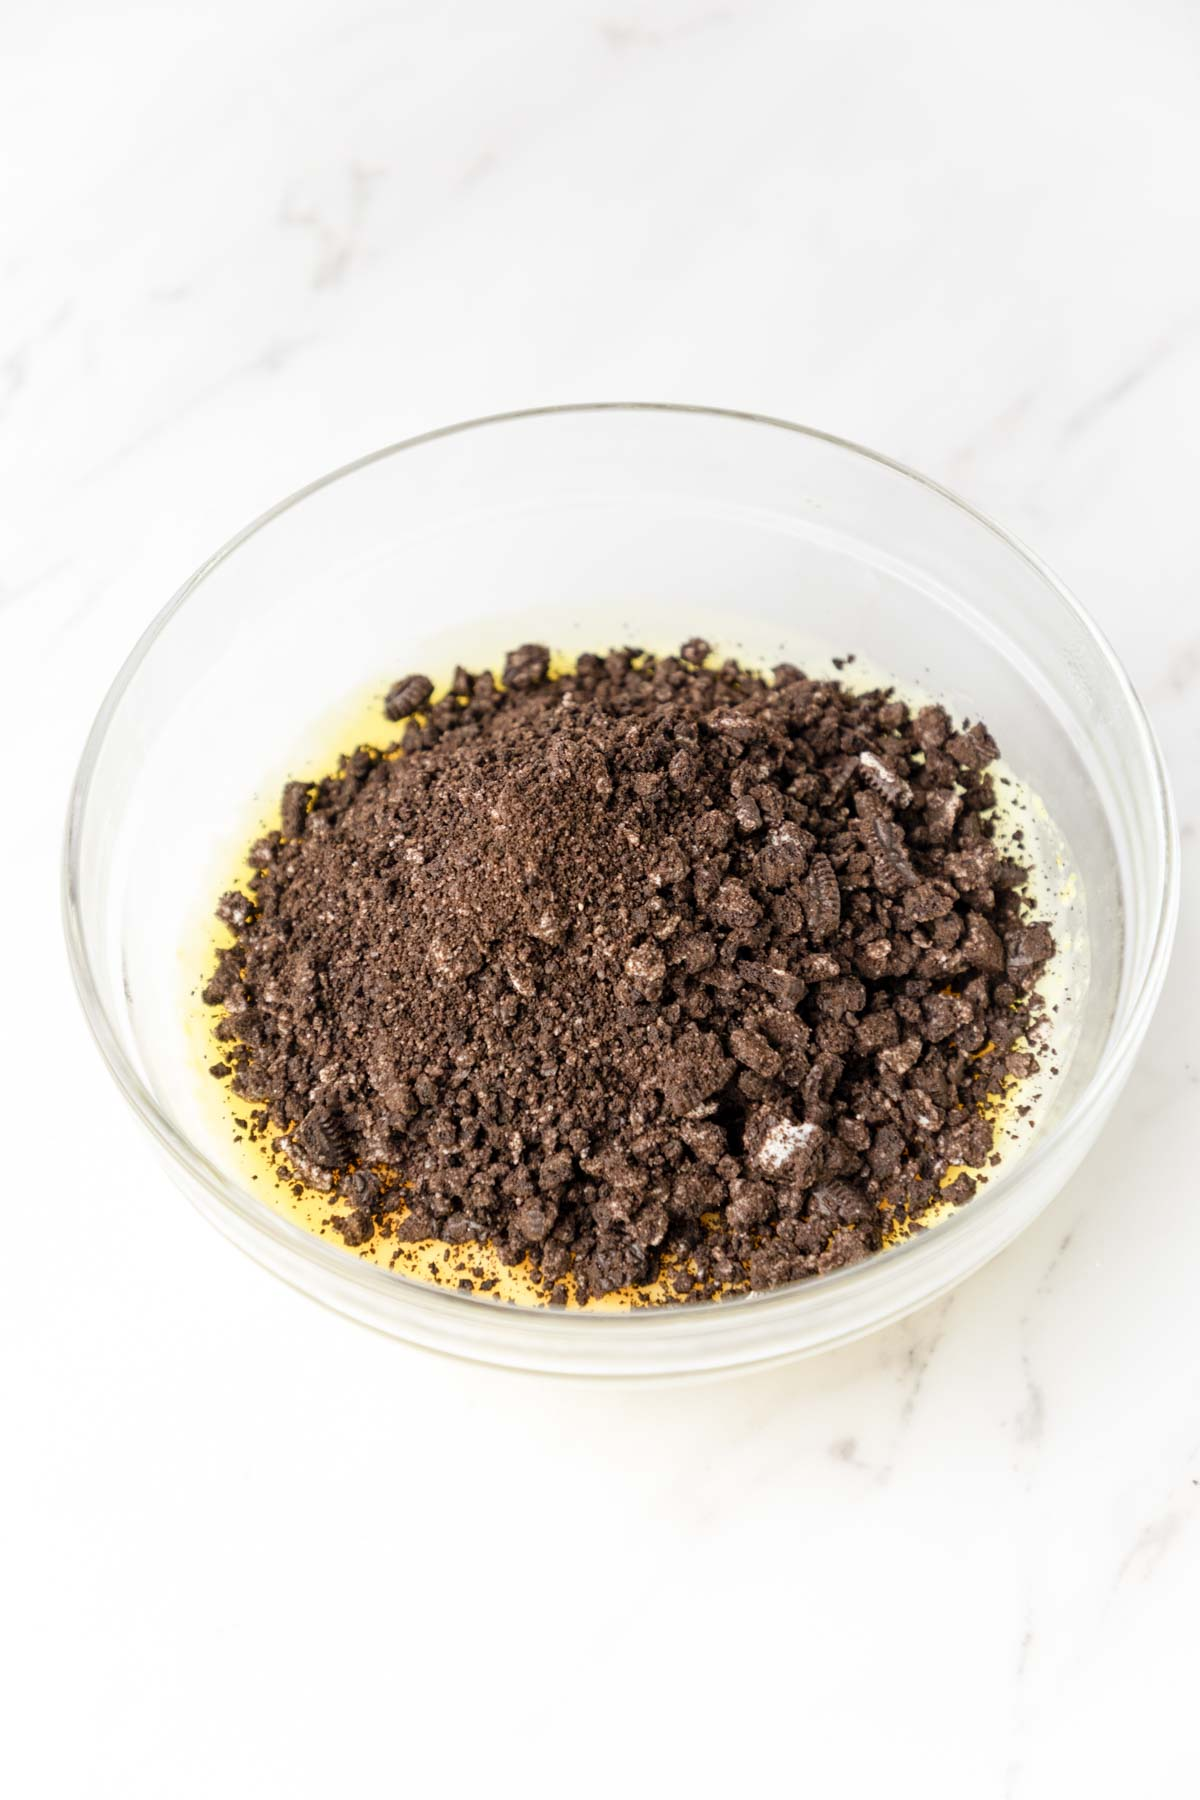 Oreo crumbs on top of vanilla pudding in a bowl